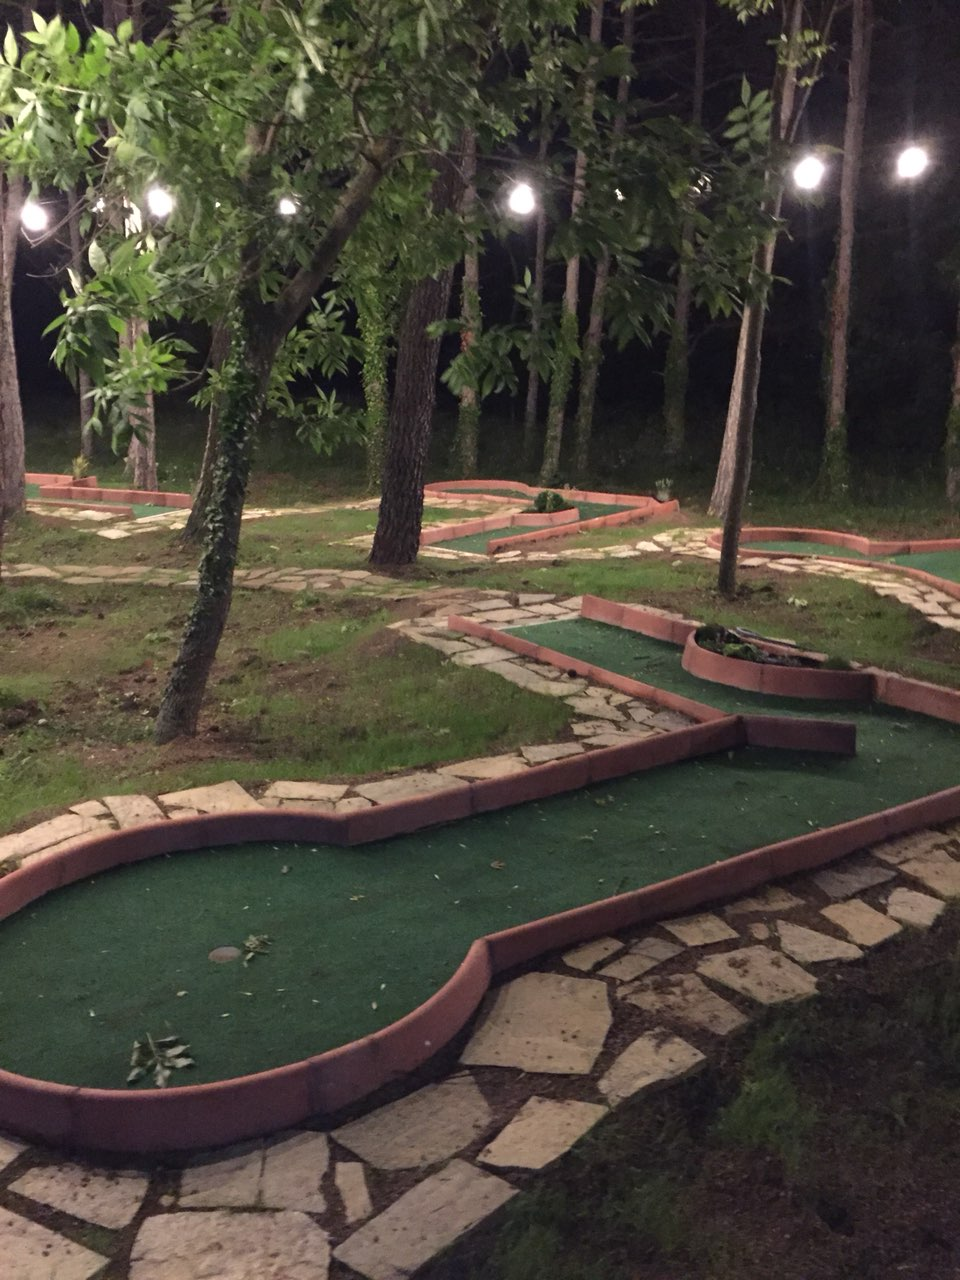 Portable miniature golf courses for indoor and outdoor use ... on backyard chess ideas, backyard bird sanctuary ideas, backyard bar ideas, backyard spa ideas, backyard parking ideas, backyard games ideas, backyard yoga ideas,